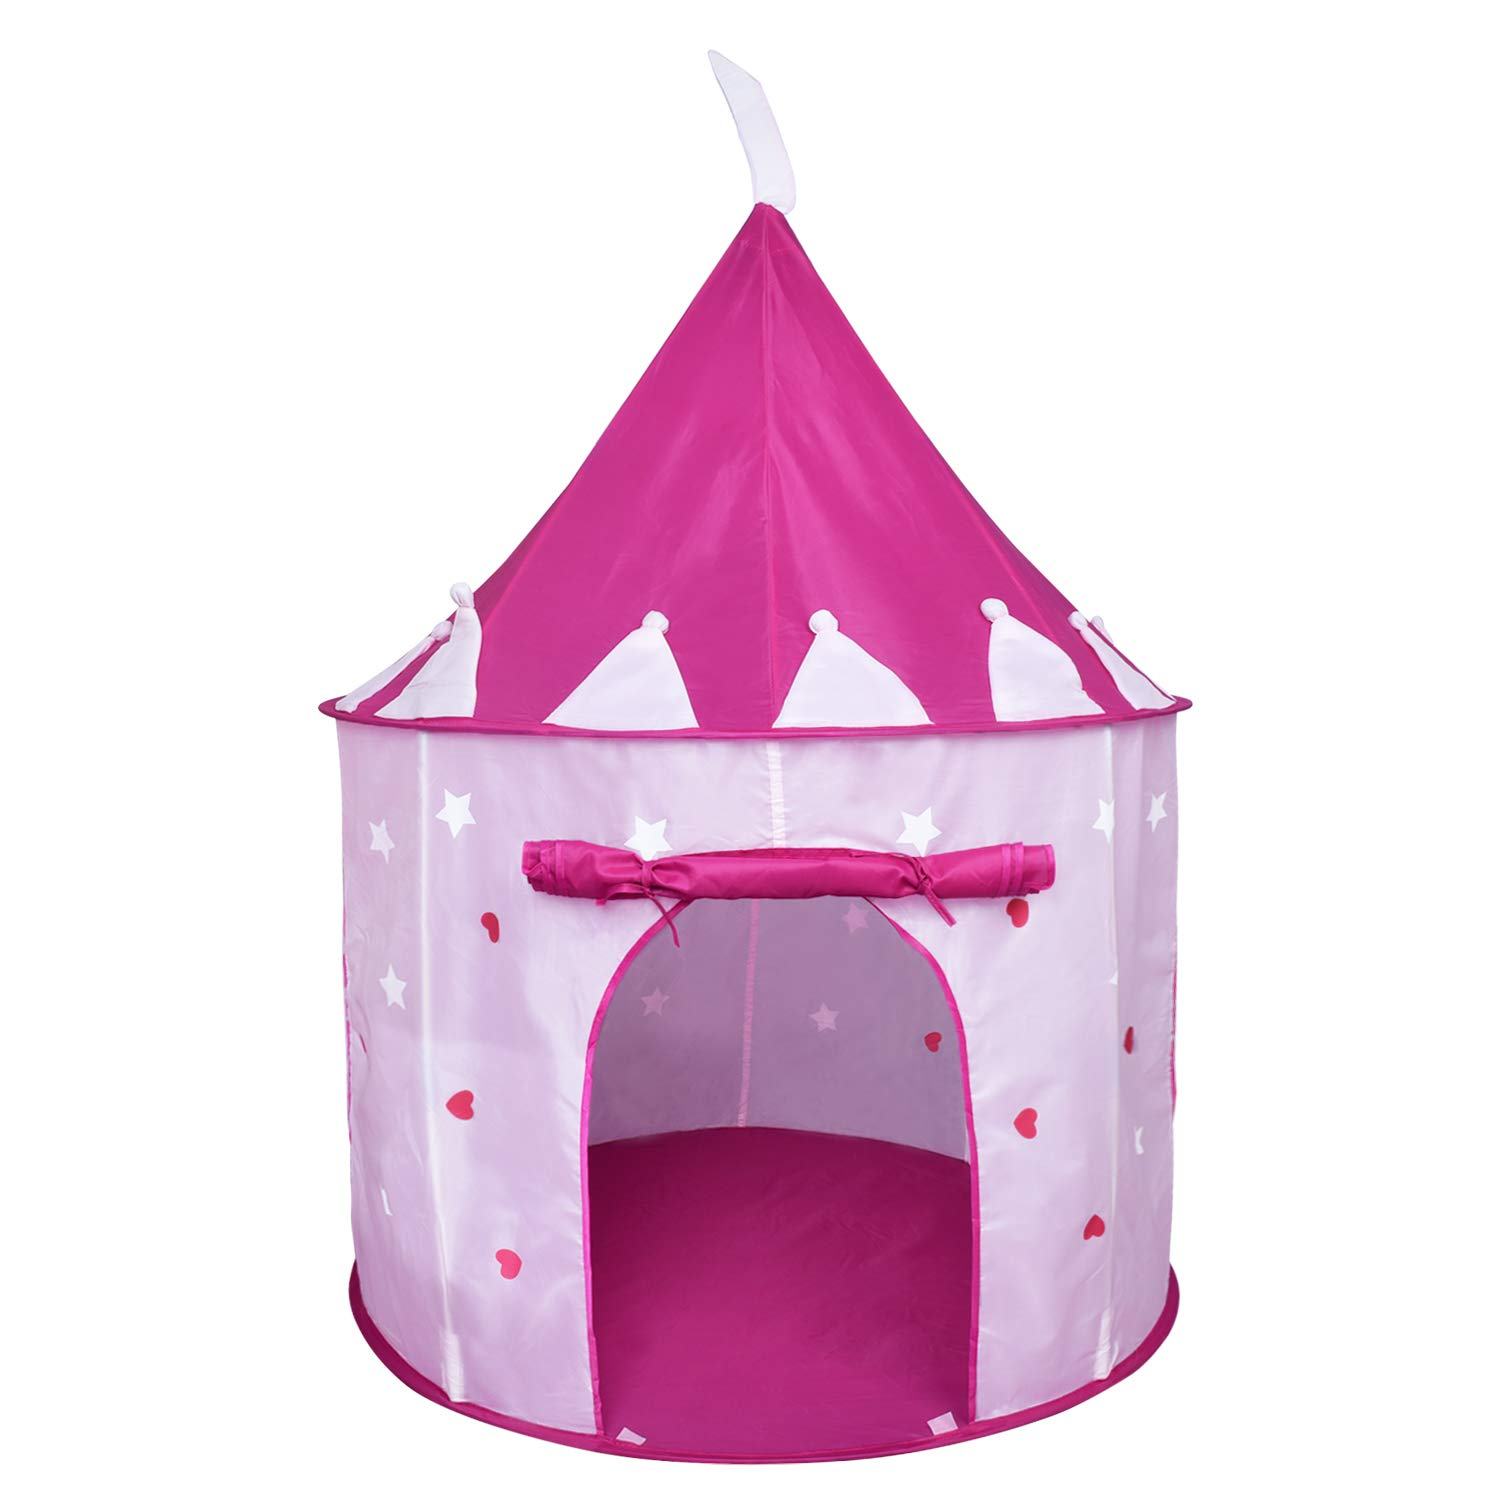 Rettebovon Princess Foldable Outdoor Children